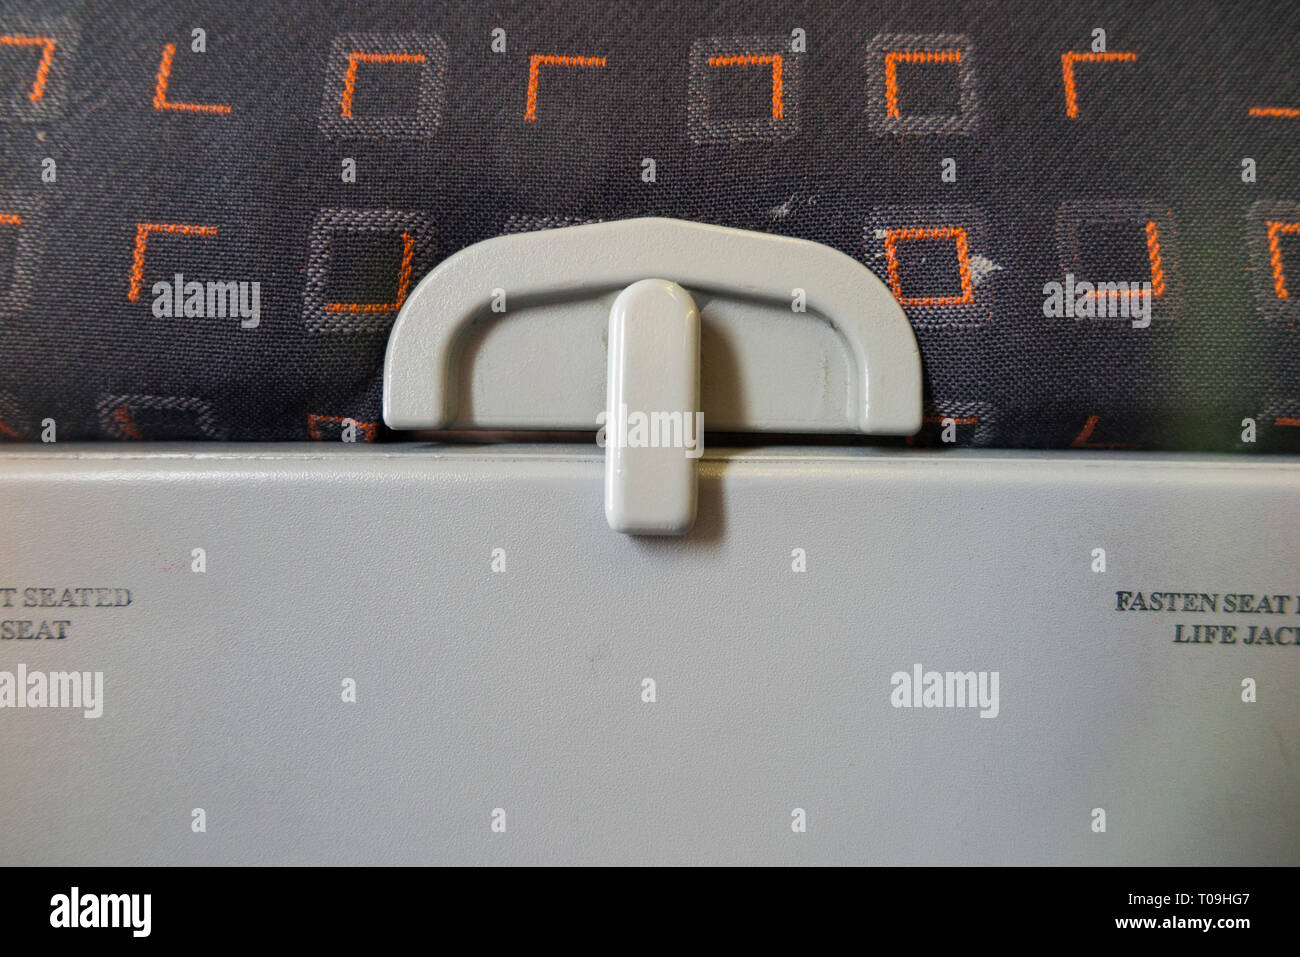 The latch / catch of a passenger 's seat tray table in folded up position ready for take off / landing on an Airbus A320 or A319 operated by Easyjet. (104) - Stock Image